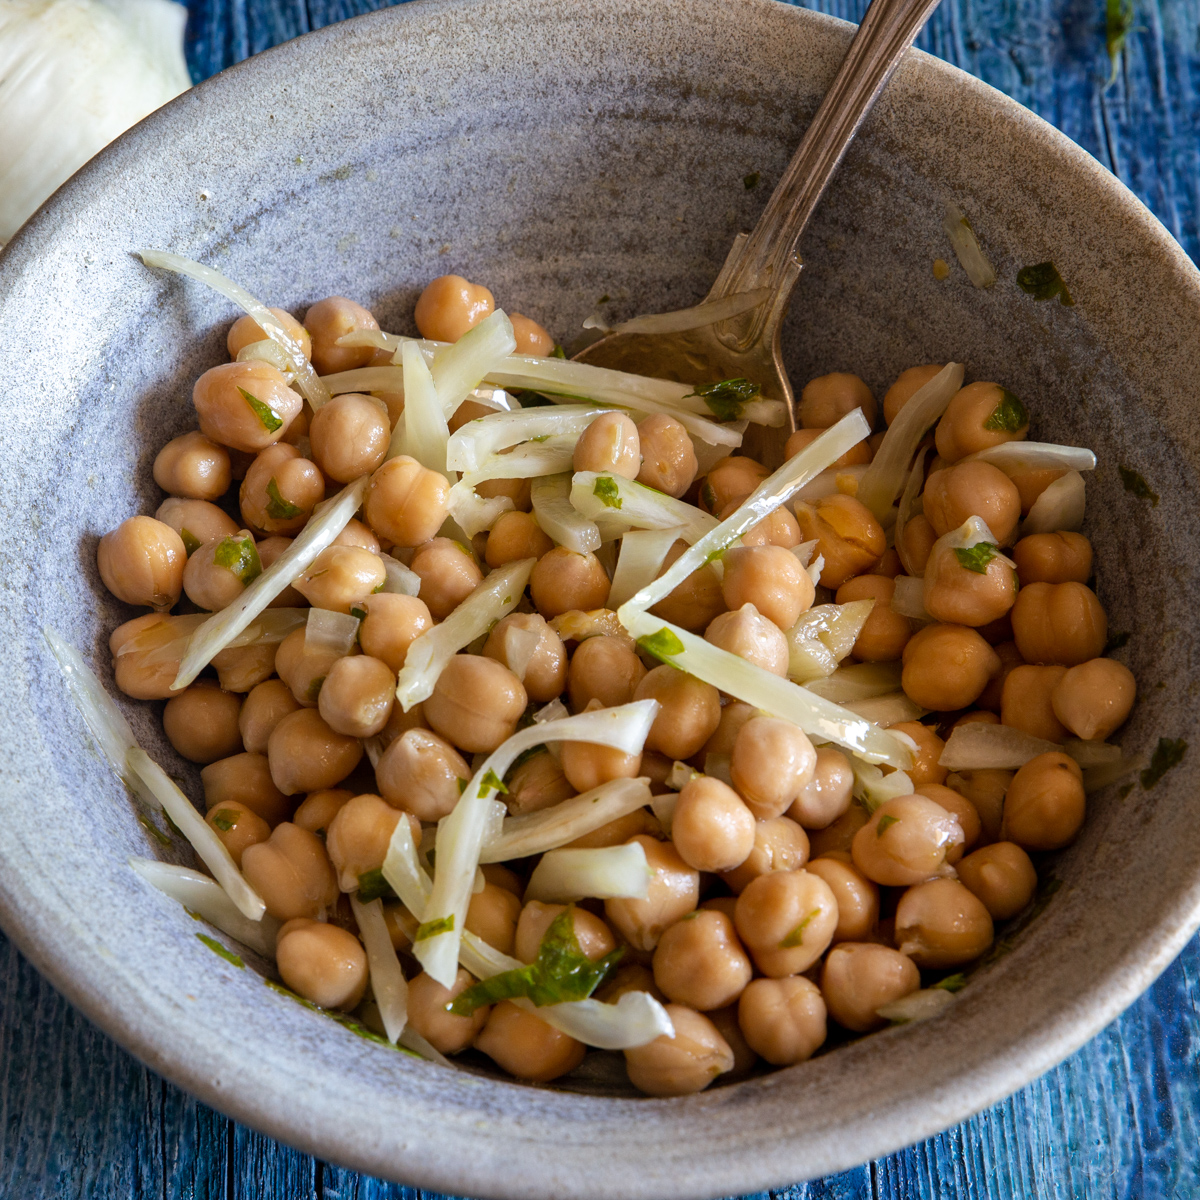 Chickpeas salad in a grey bowl with a silver spoon.